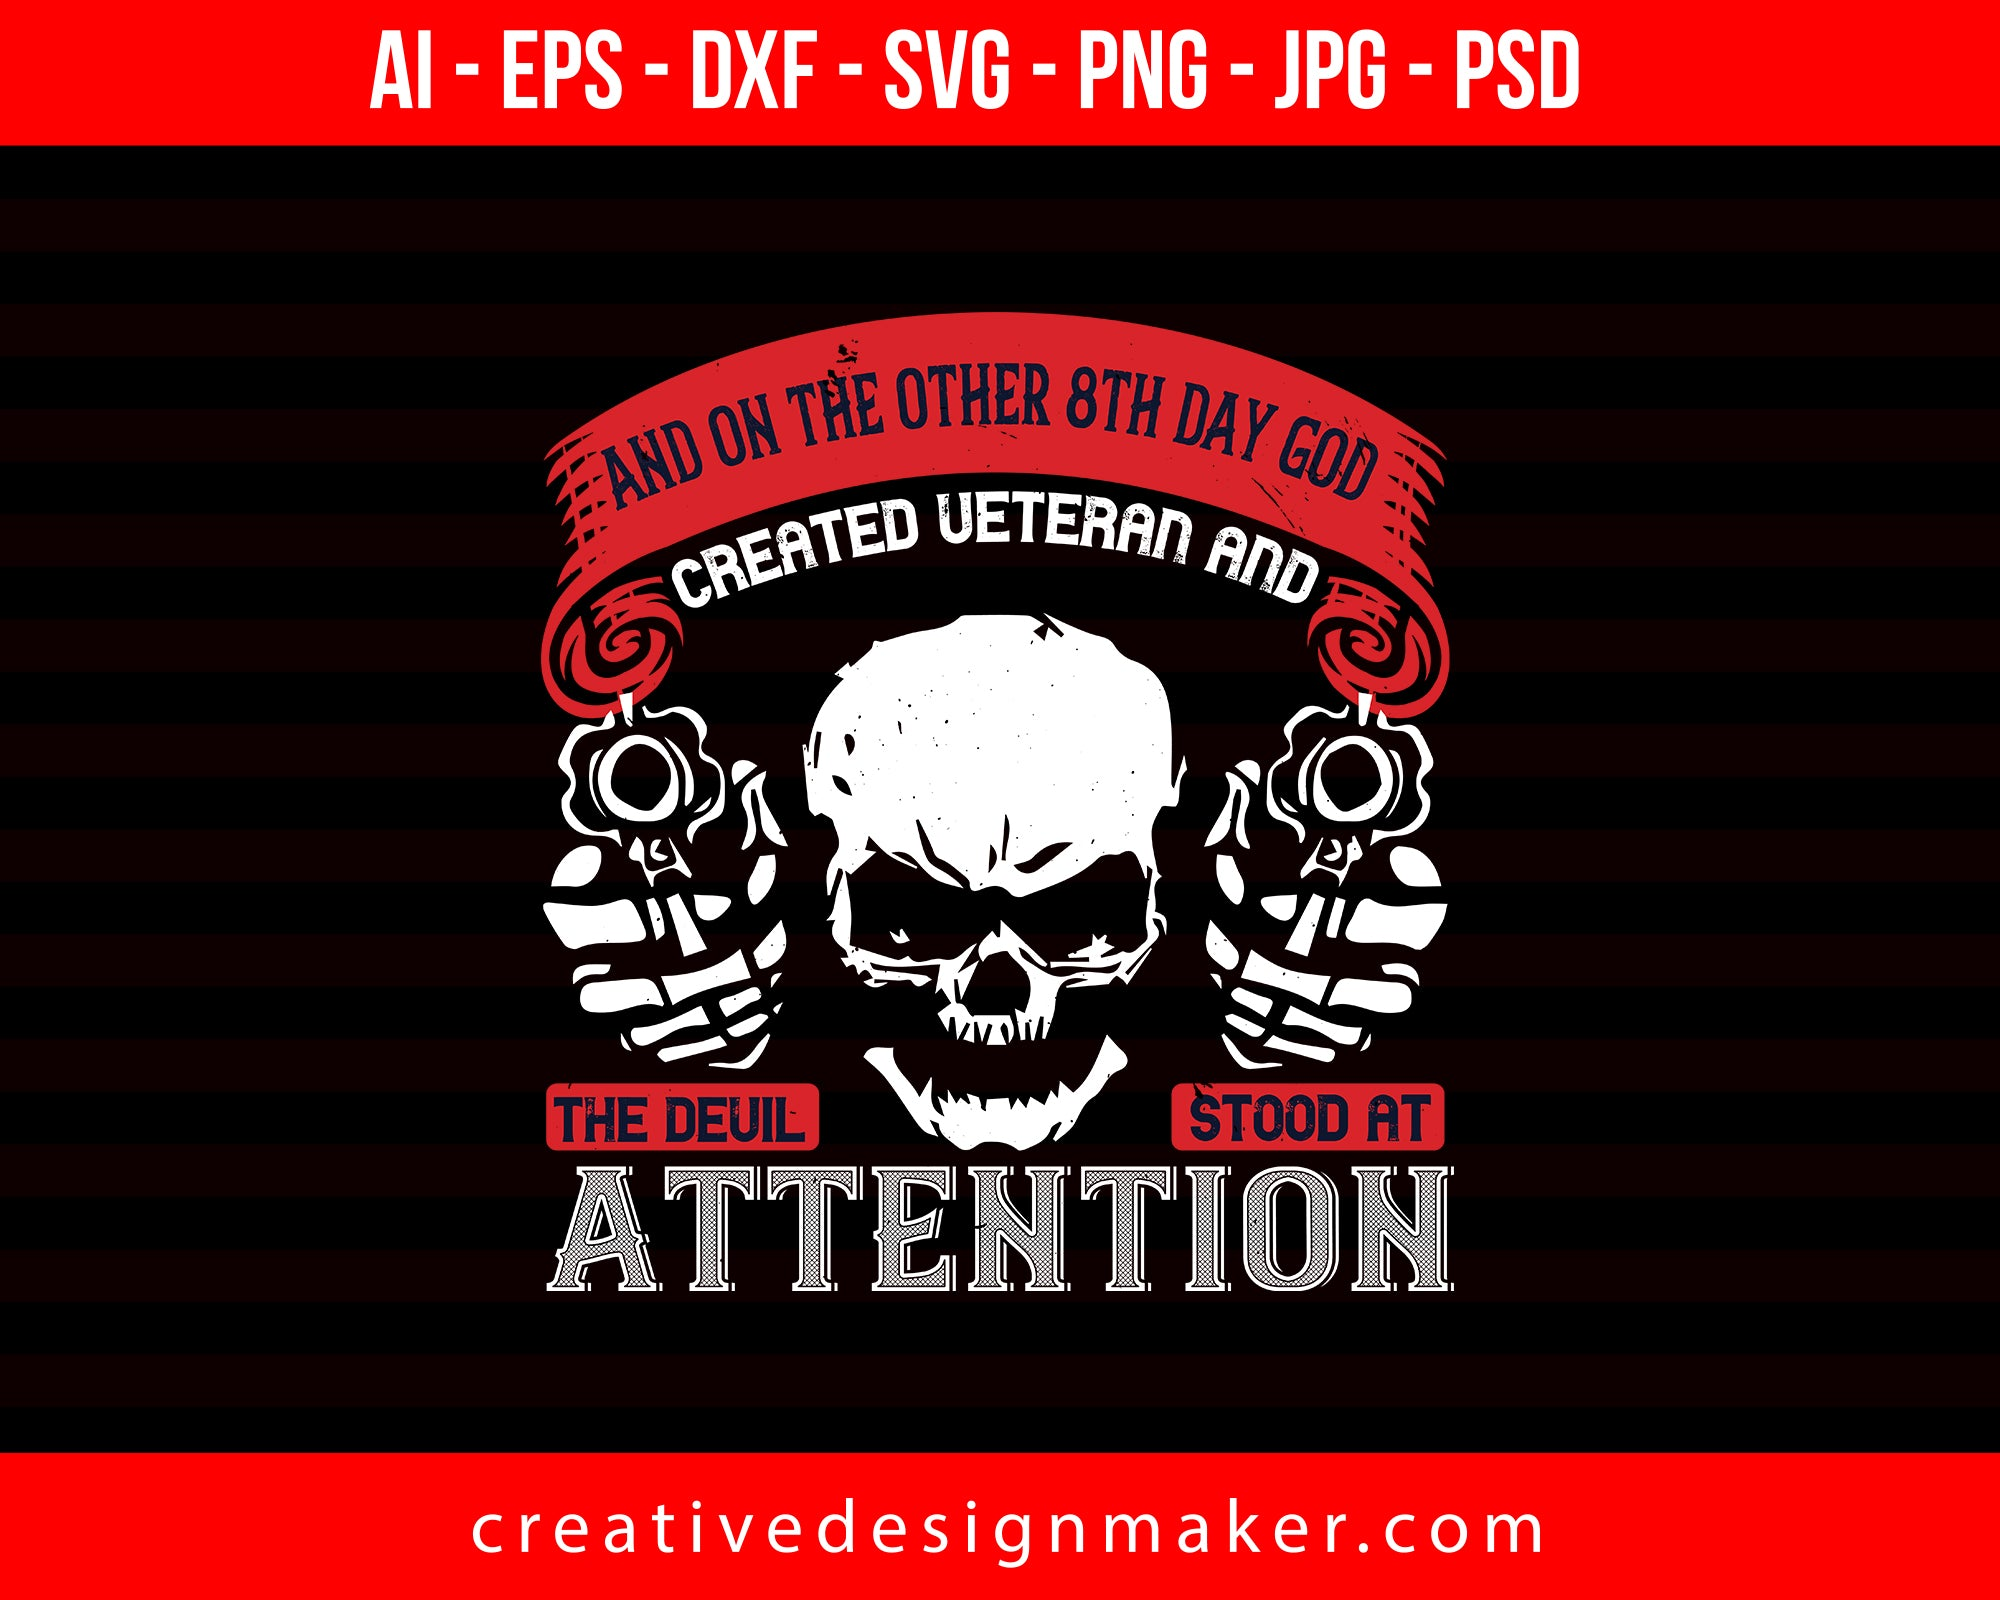 And On The Other 8th Day God Created Veteran And The Devil Stood At Attention Veterans Day Print Ready Editable T-Shirt SVG Design!